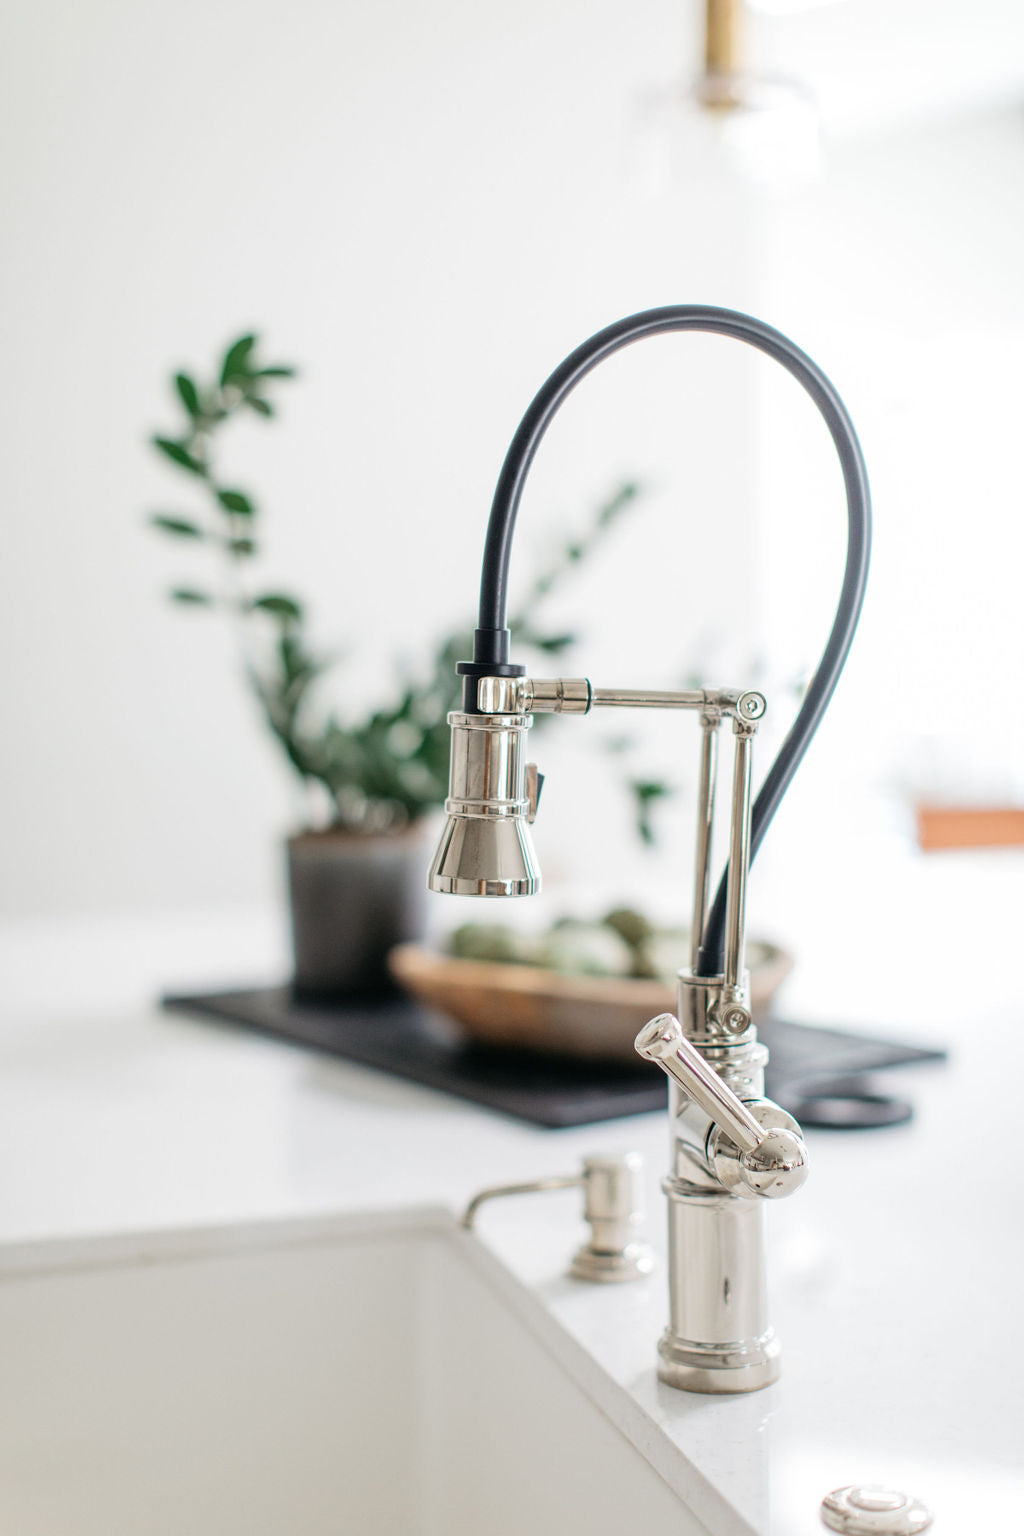 greige design shop + interiors alexandria project kitchen grey cabinets industrial faucet